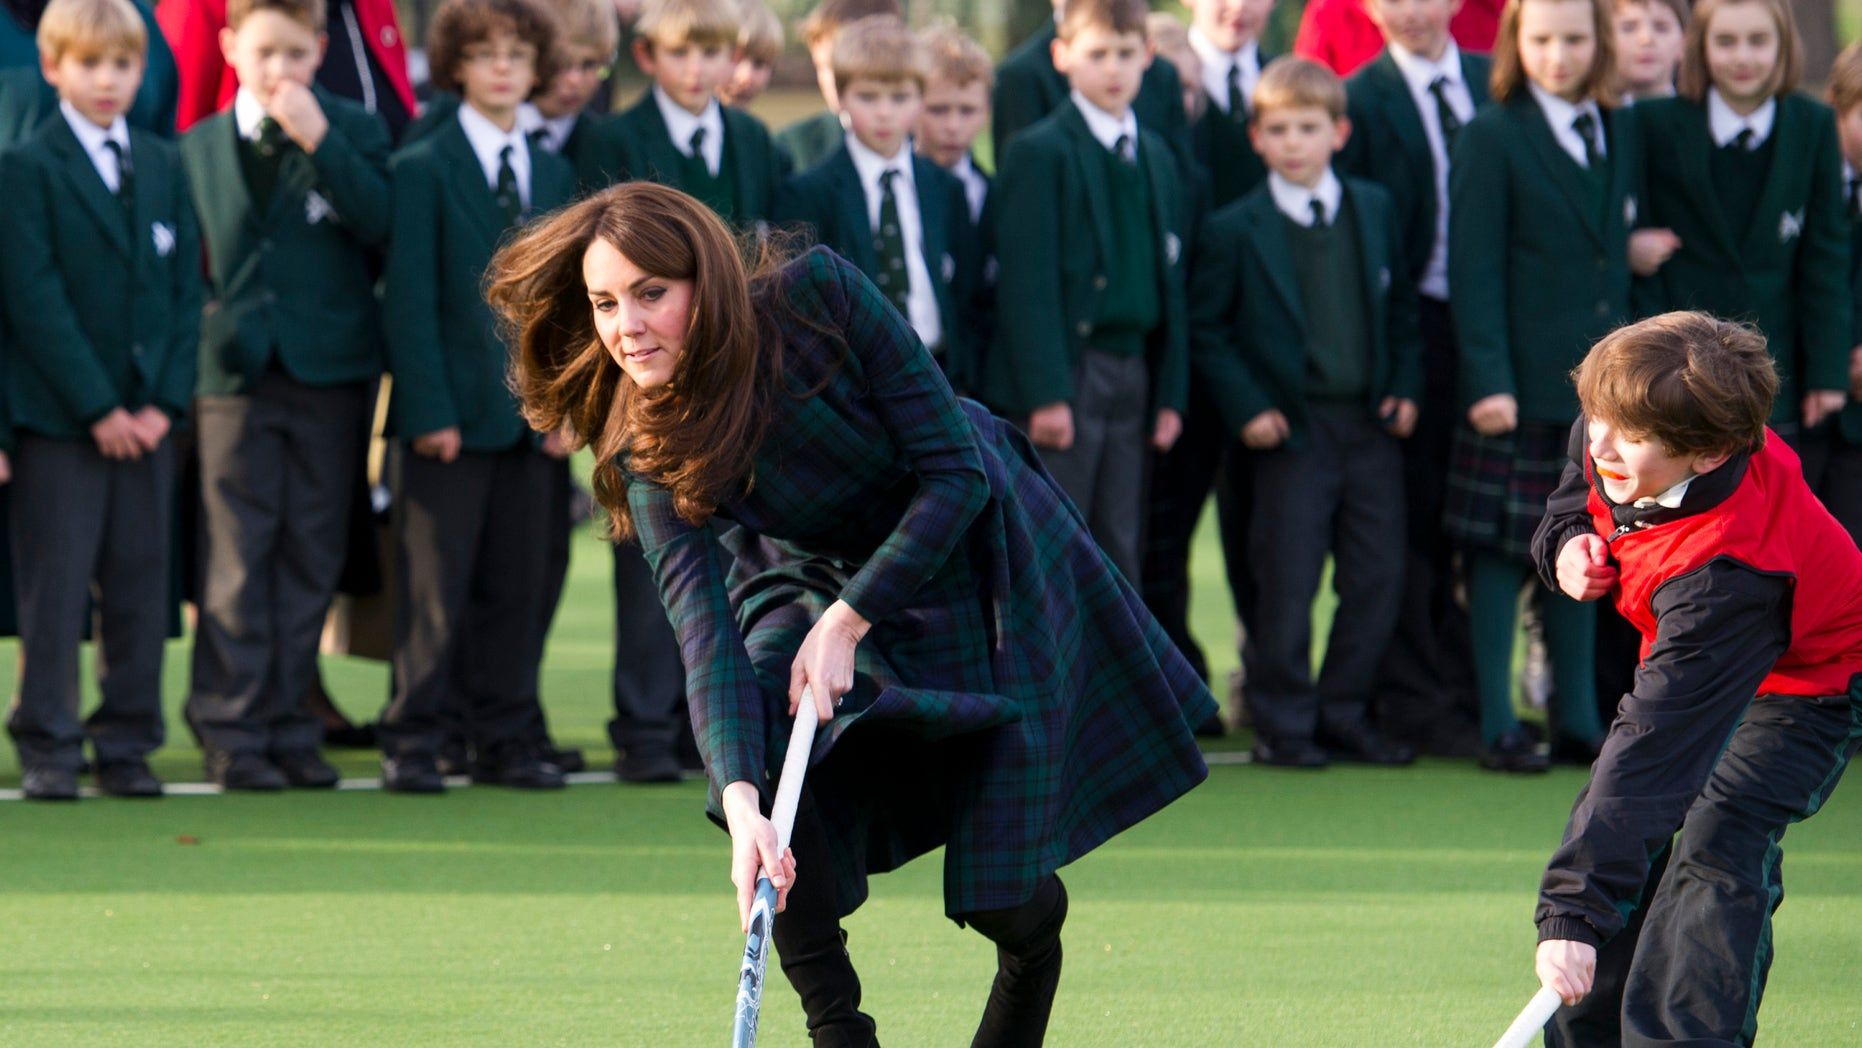 Nov. 30, 2012 - Kate, the Duchess of Cambridge plays hockey during her visit to St. Andrews School in Pangbourne, England.